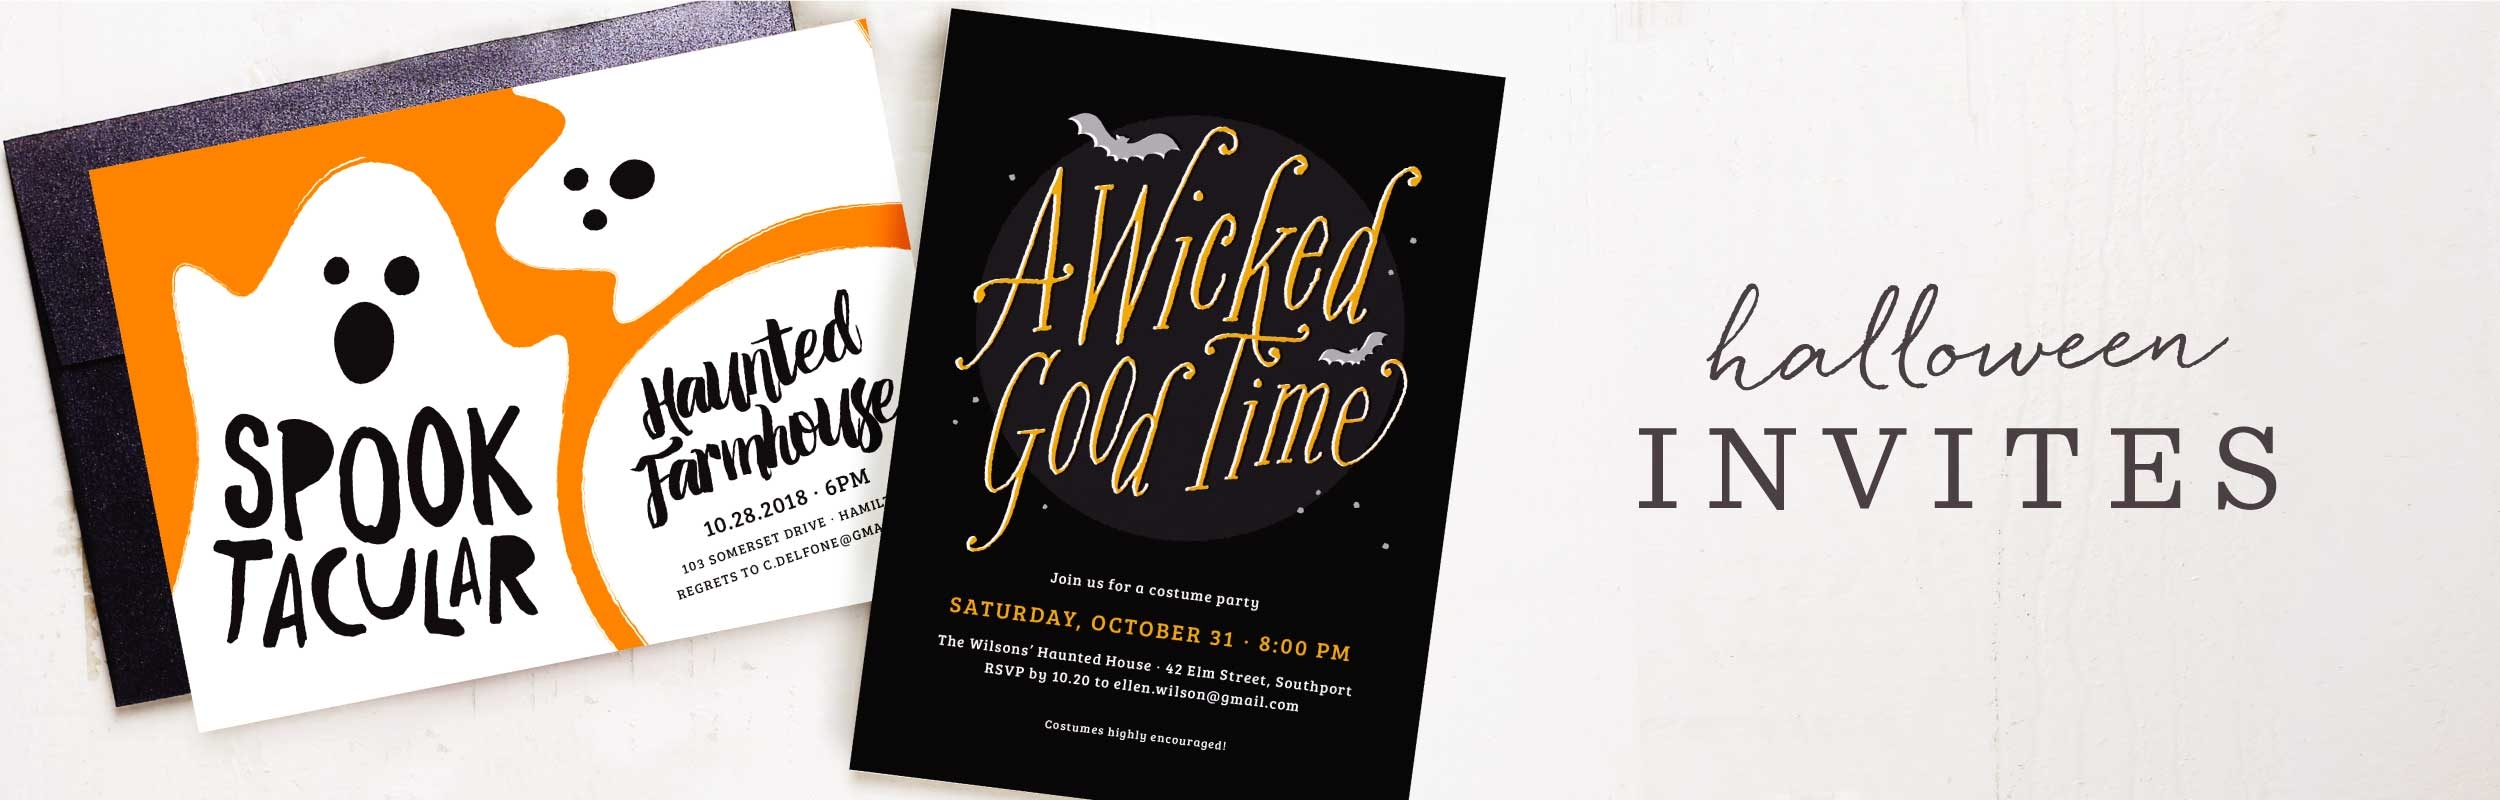 Halloween Party Invitations | Instant Previews with Your Photos ...